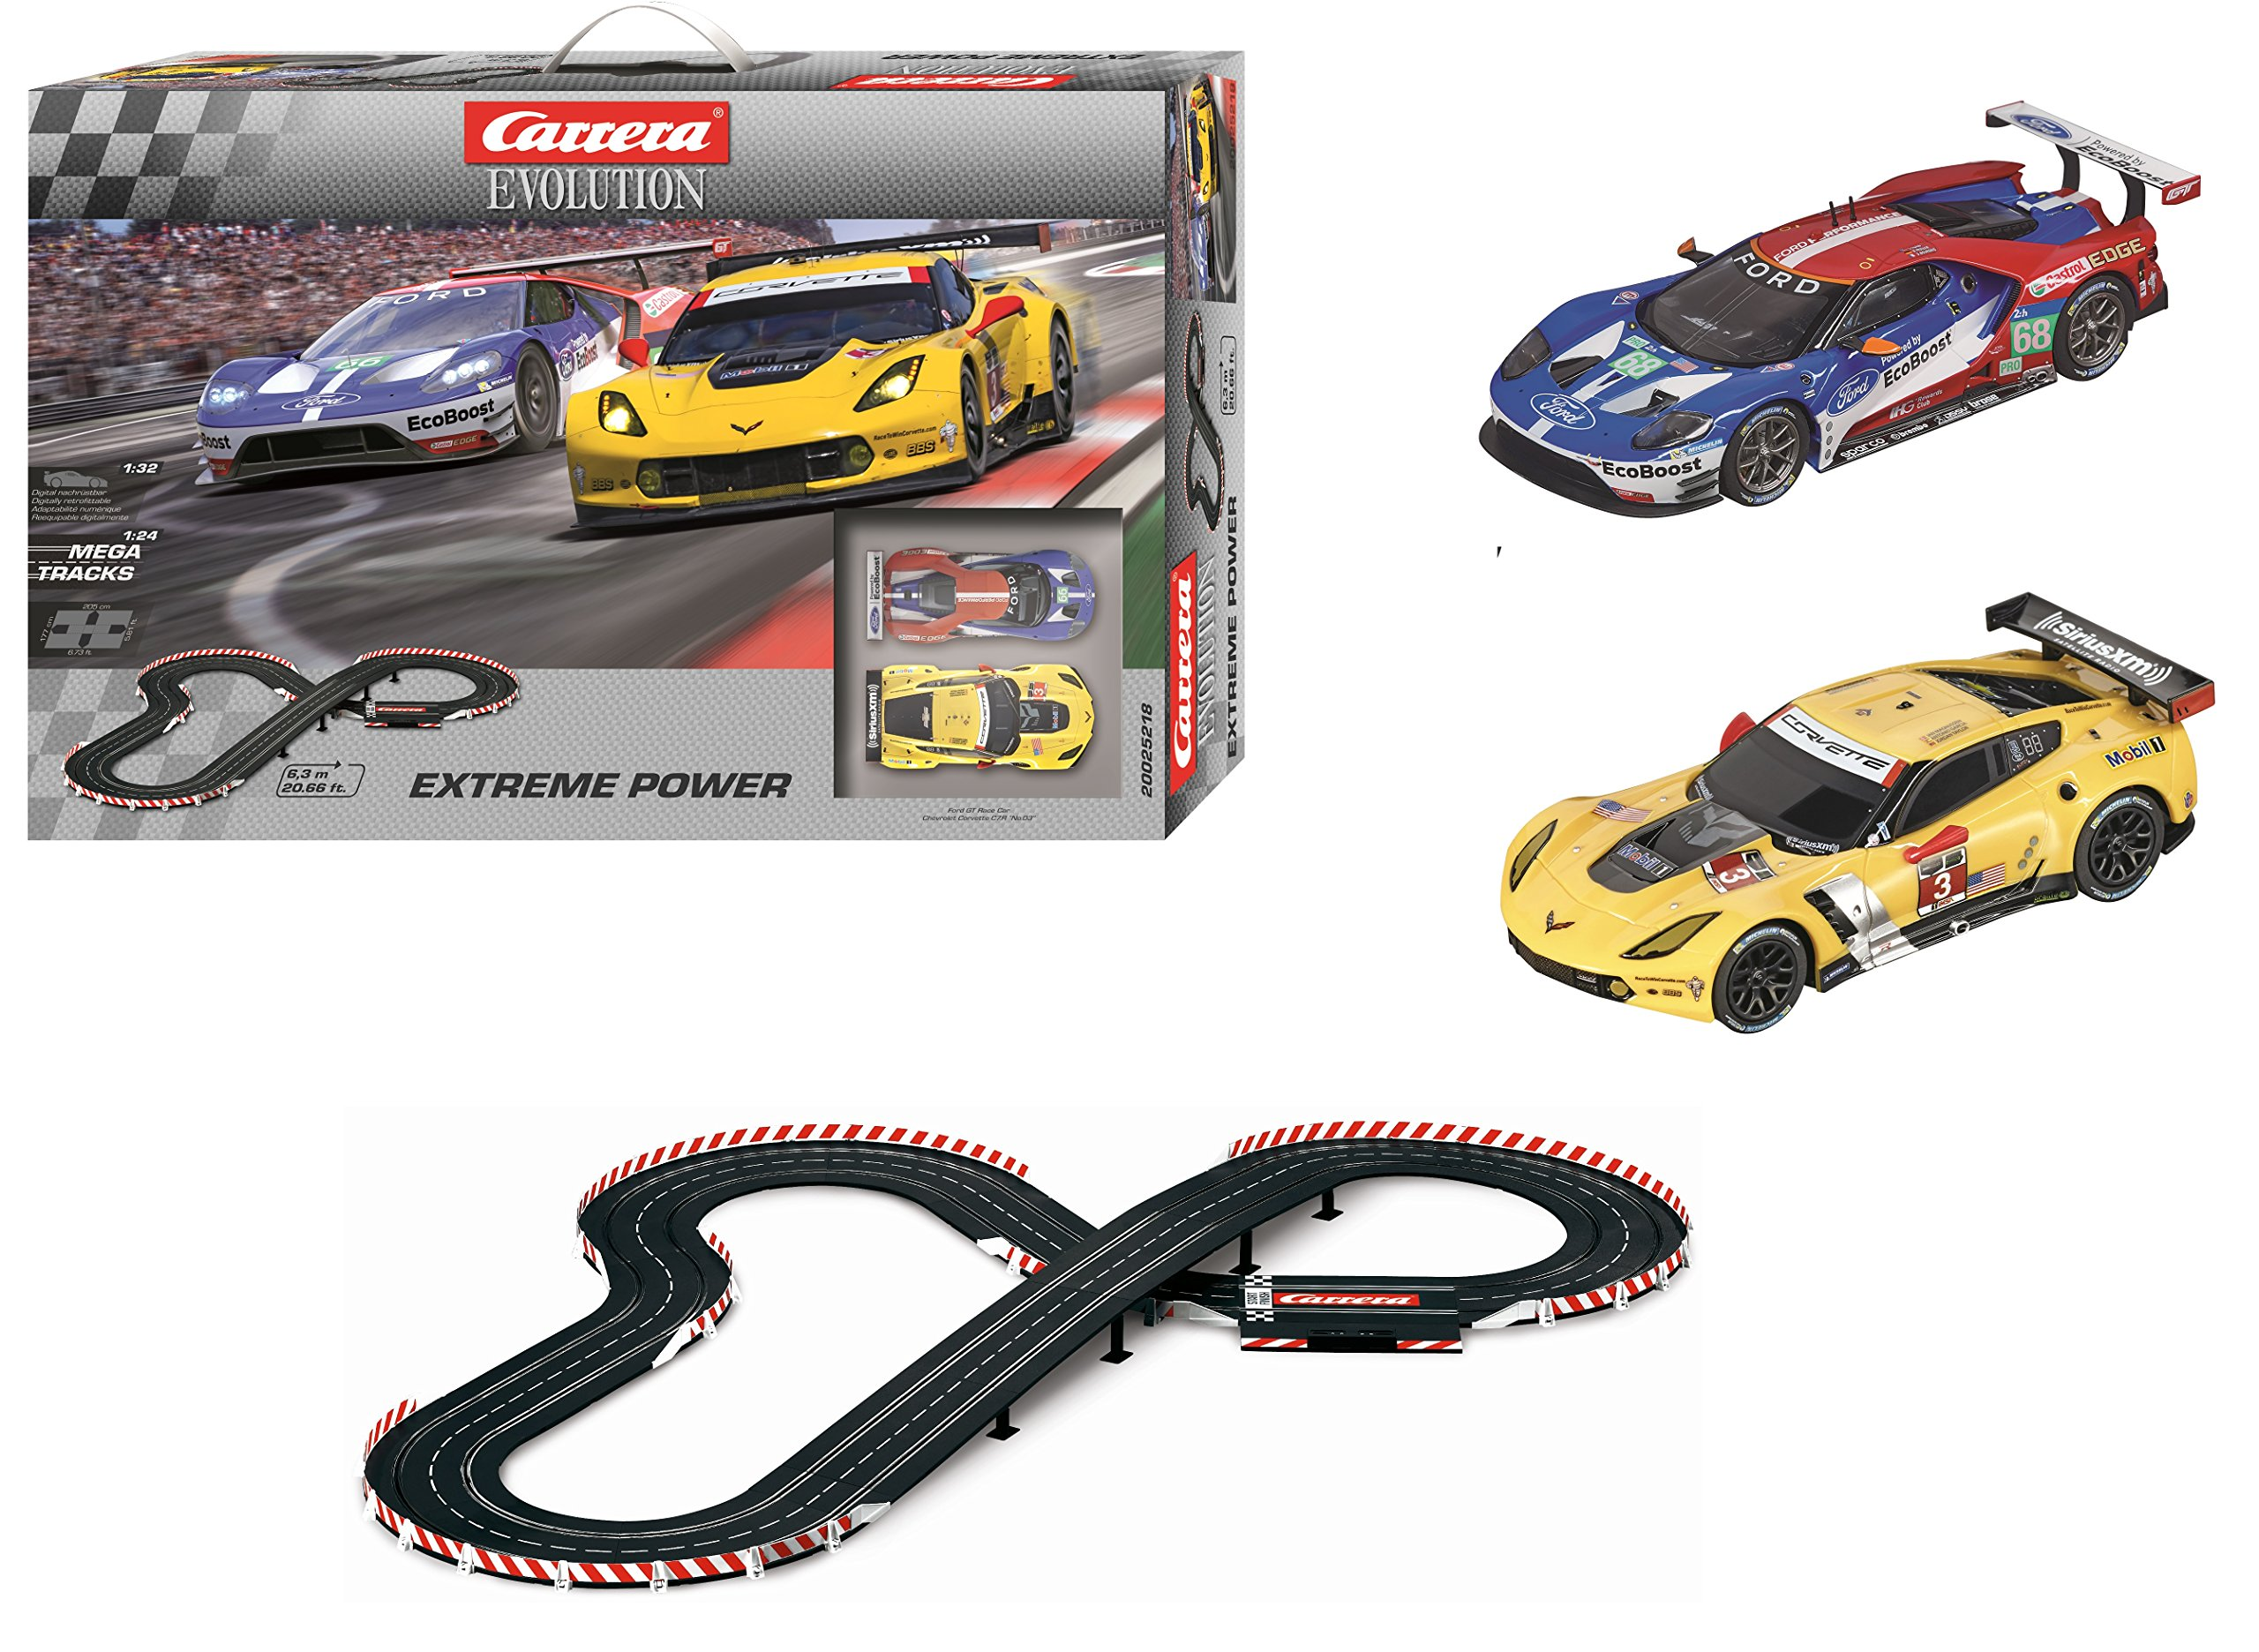 Carrera Evolution 20025218 Extreme Power Analog Electric 1: 32 Scale Slot Car Racing Track Set System